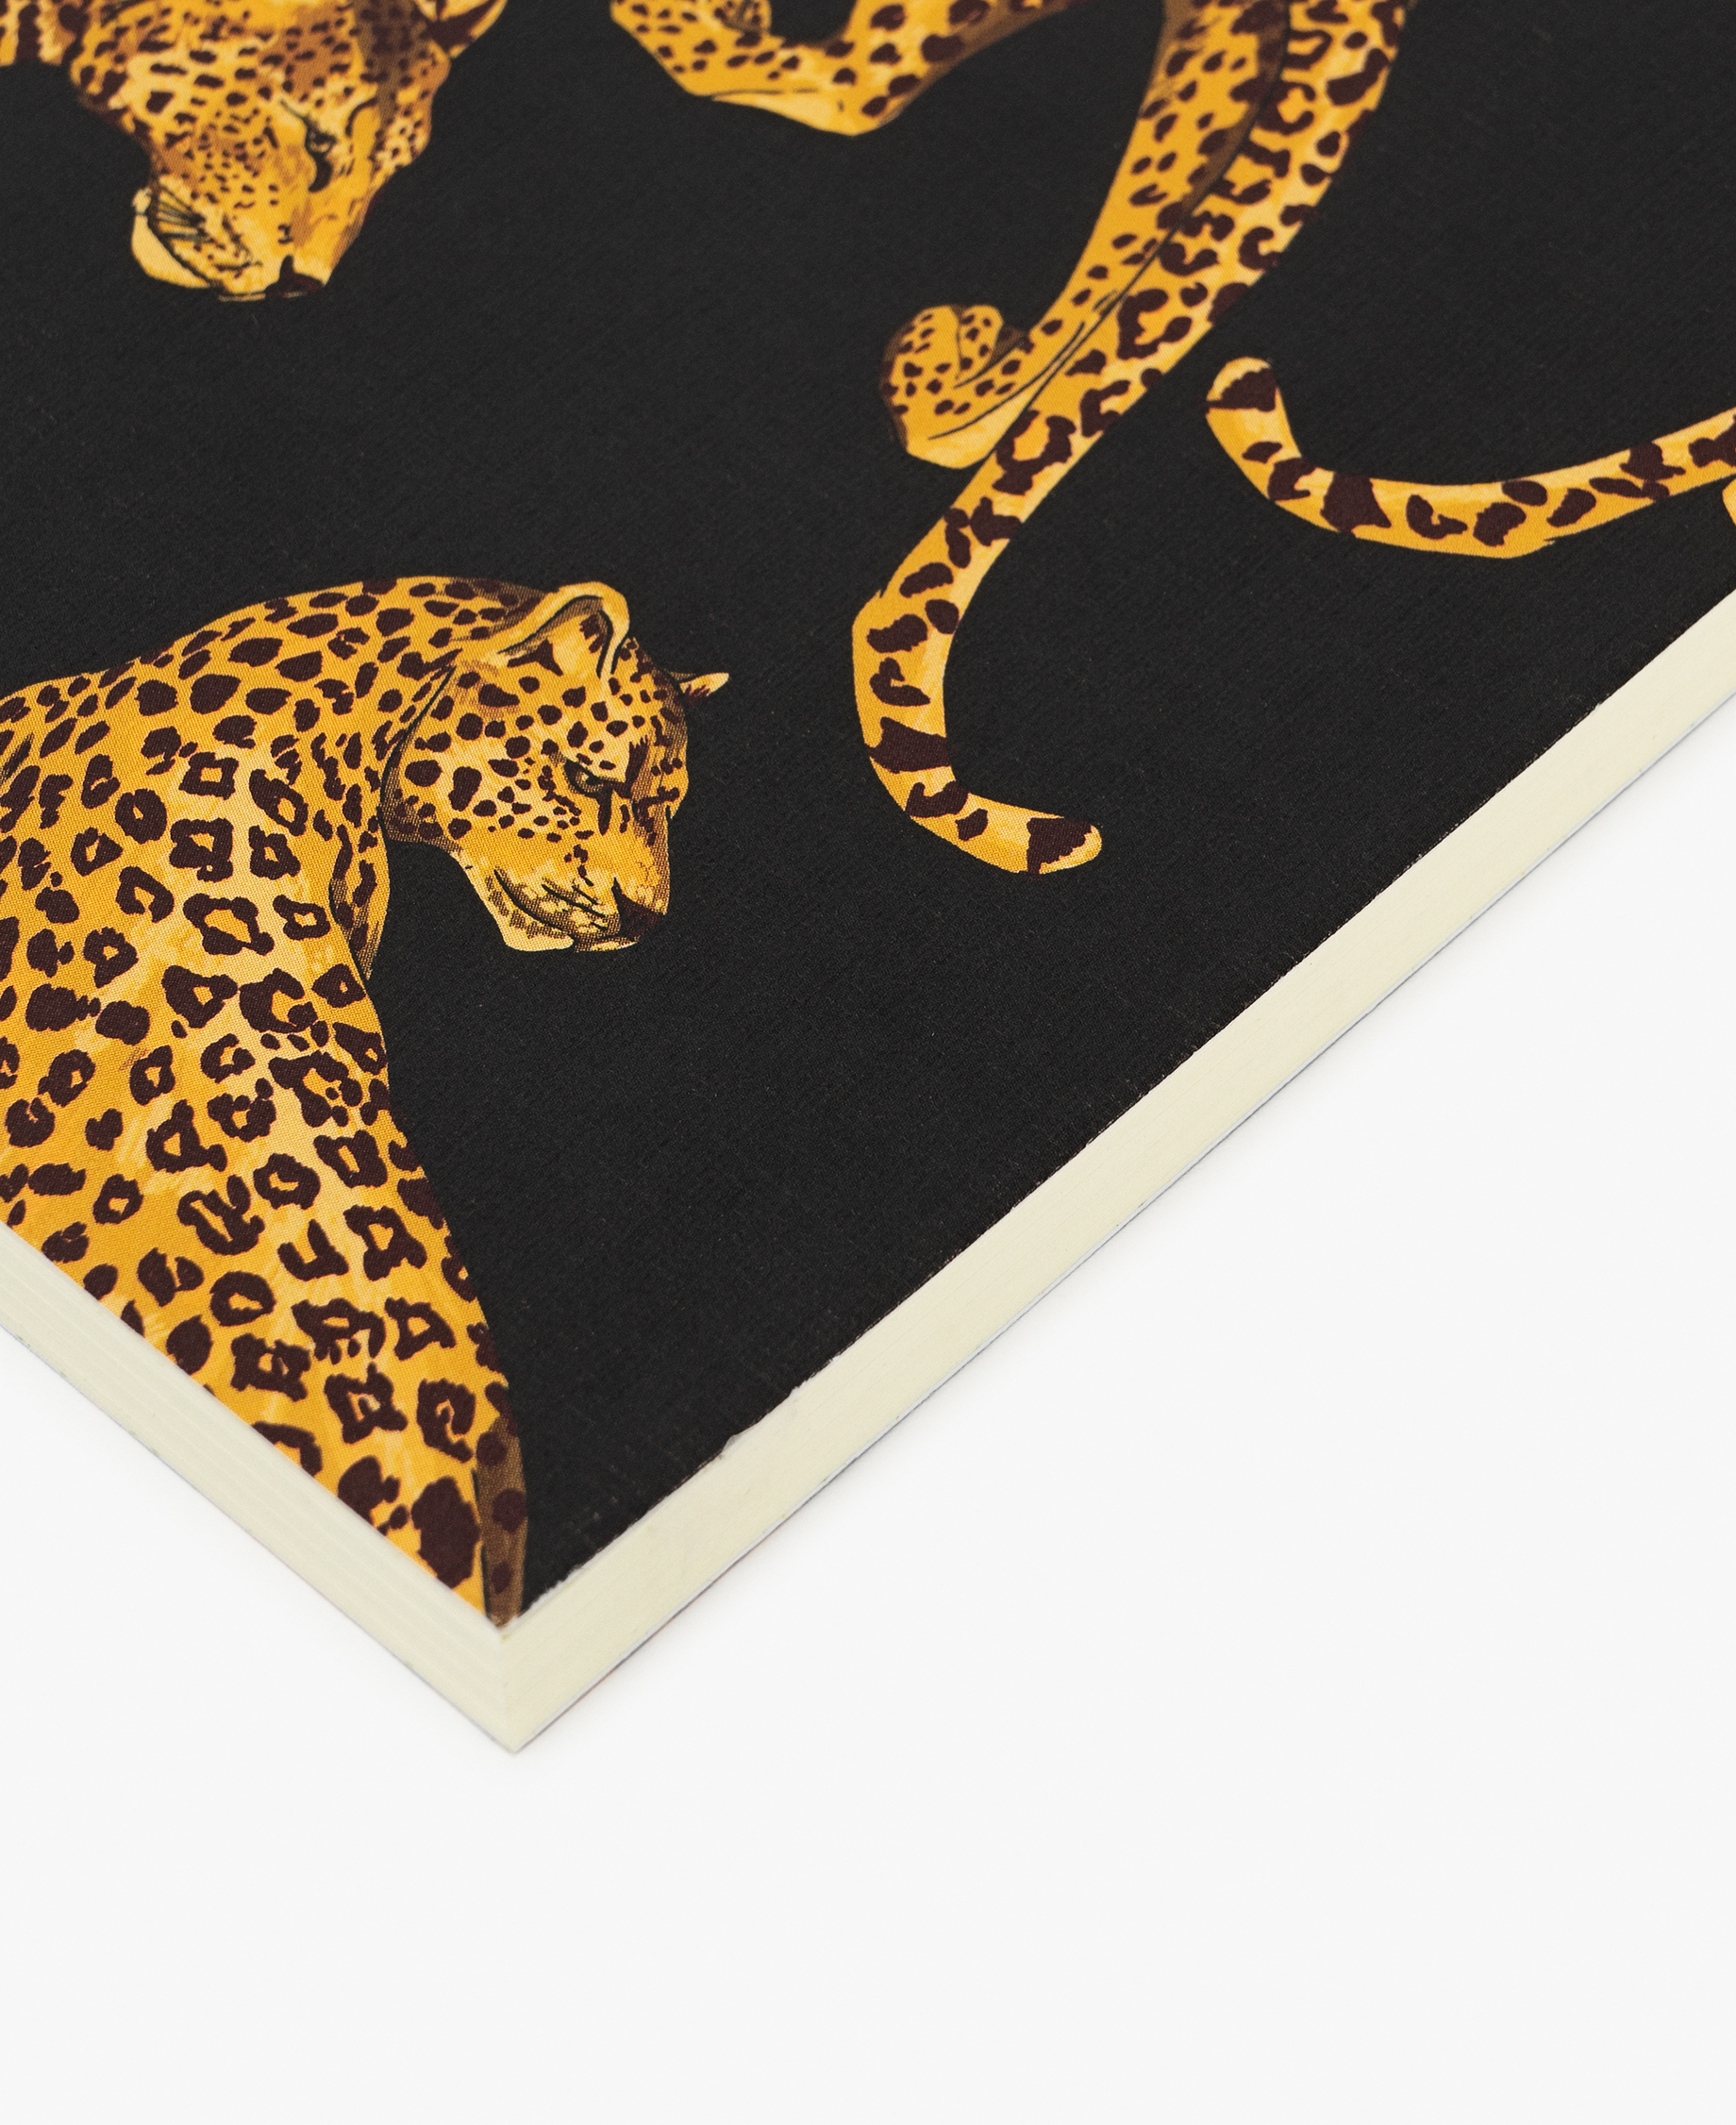 yellow panther journal notebook